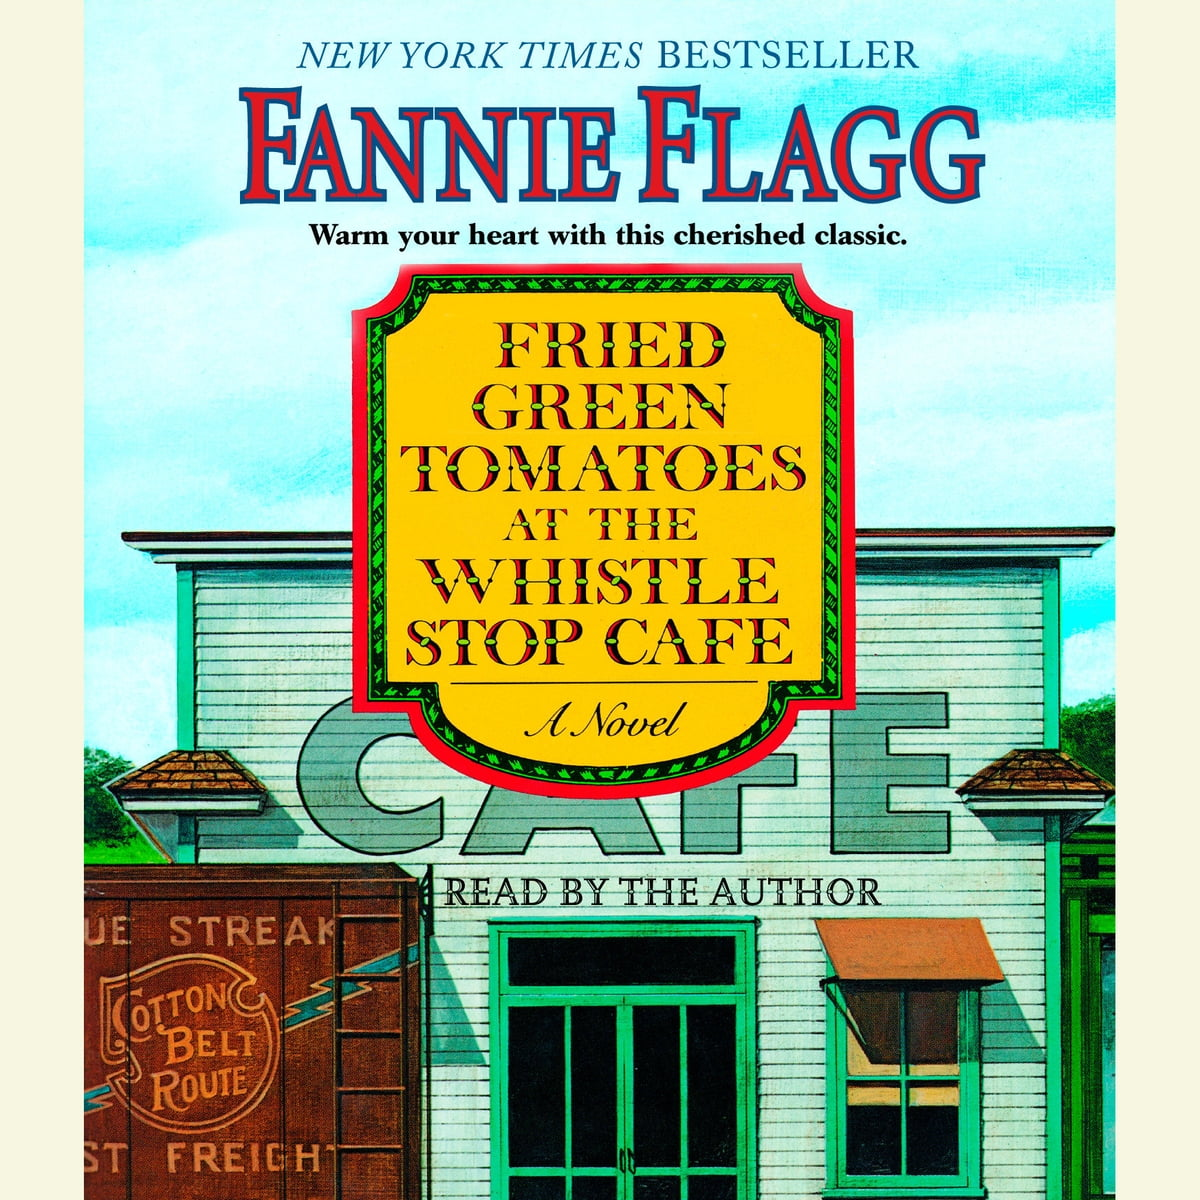 Fried Green Tomatoes at the Whistle Stop Cafe audiobook by Fannie Flagg -  Rakuten Kobo